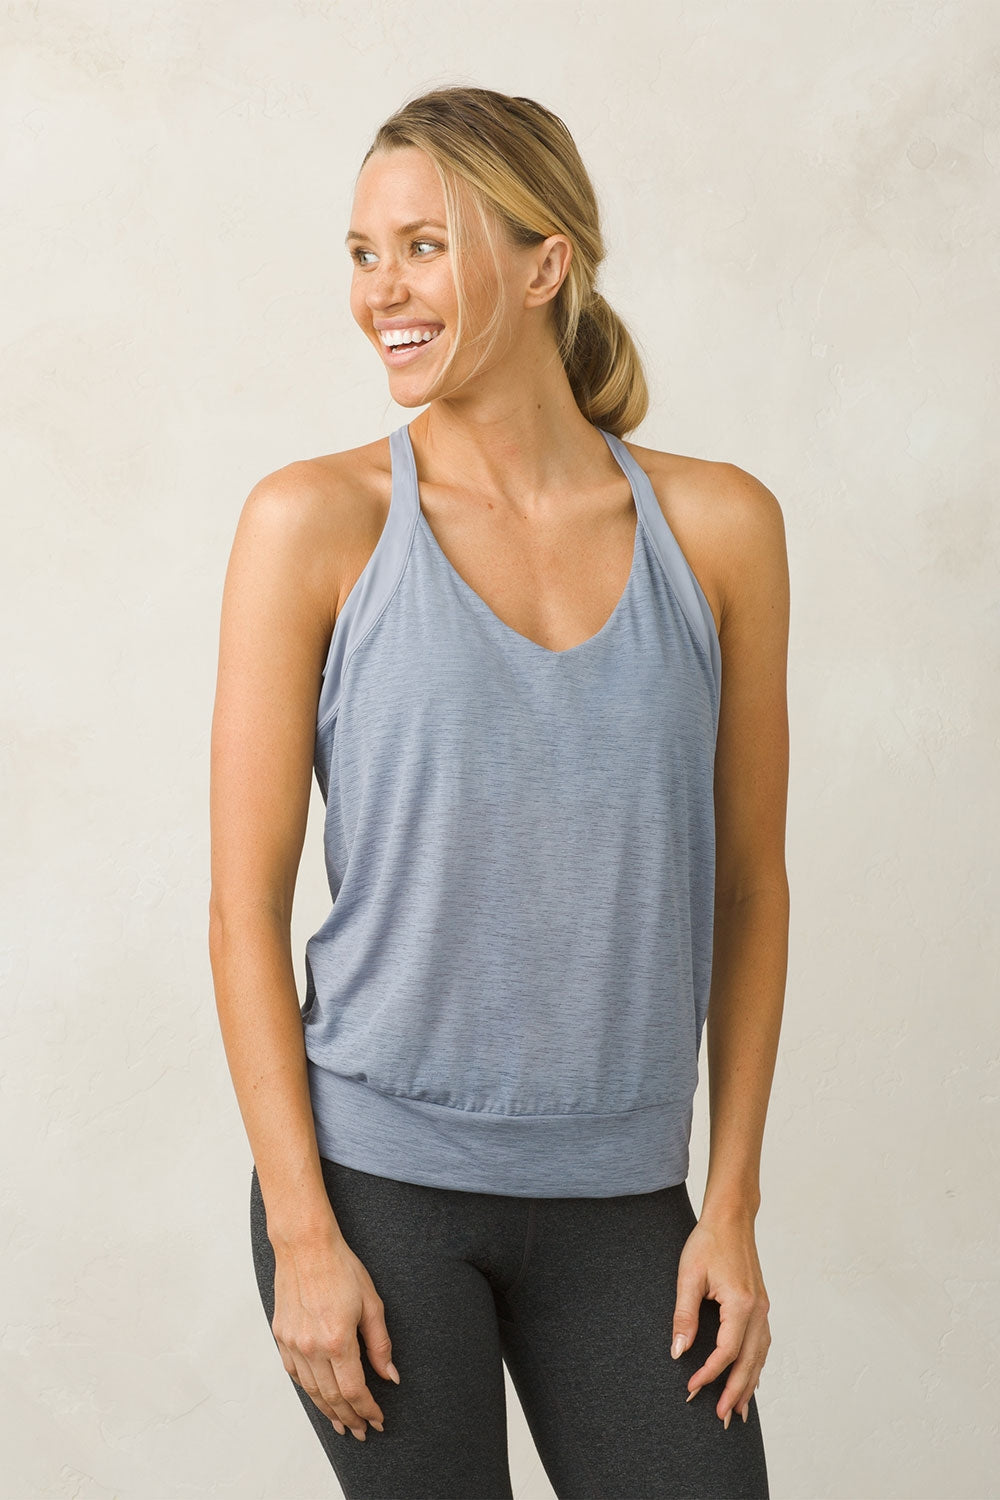 Womens Bedrock Top By Prana At Gazelle Sports